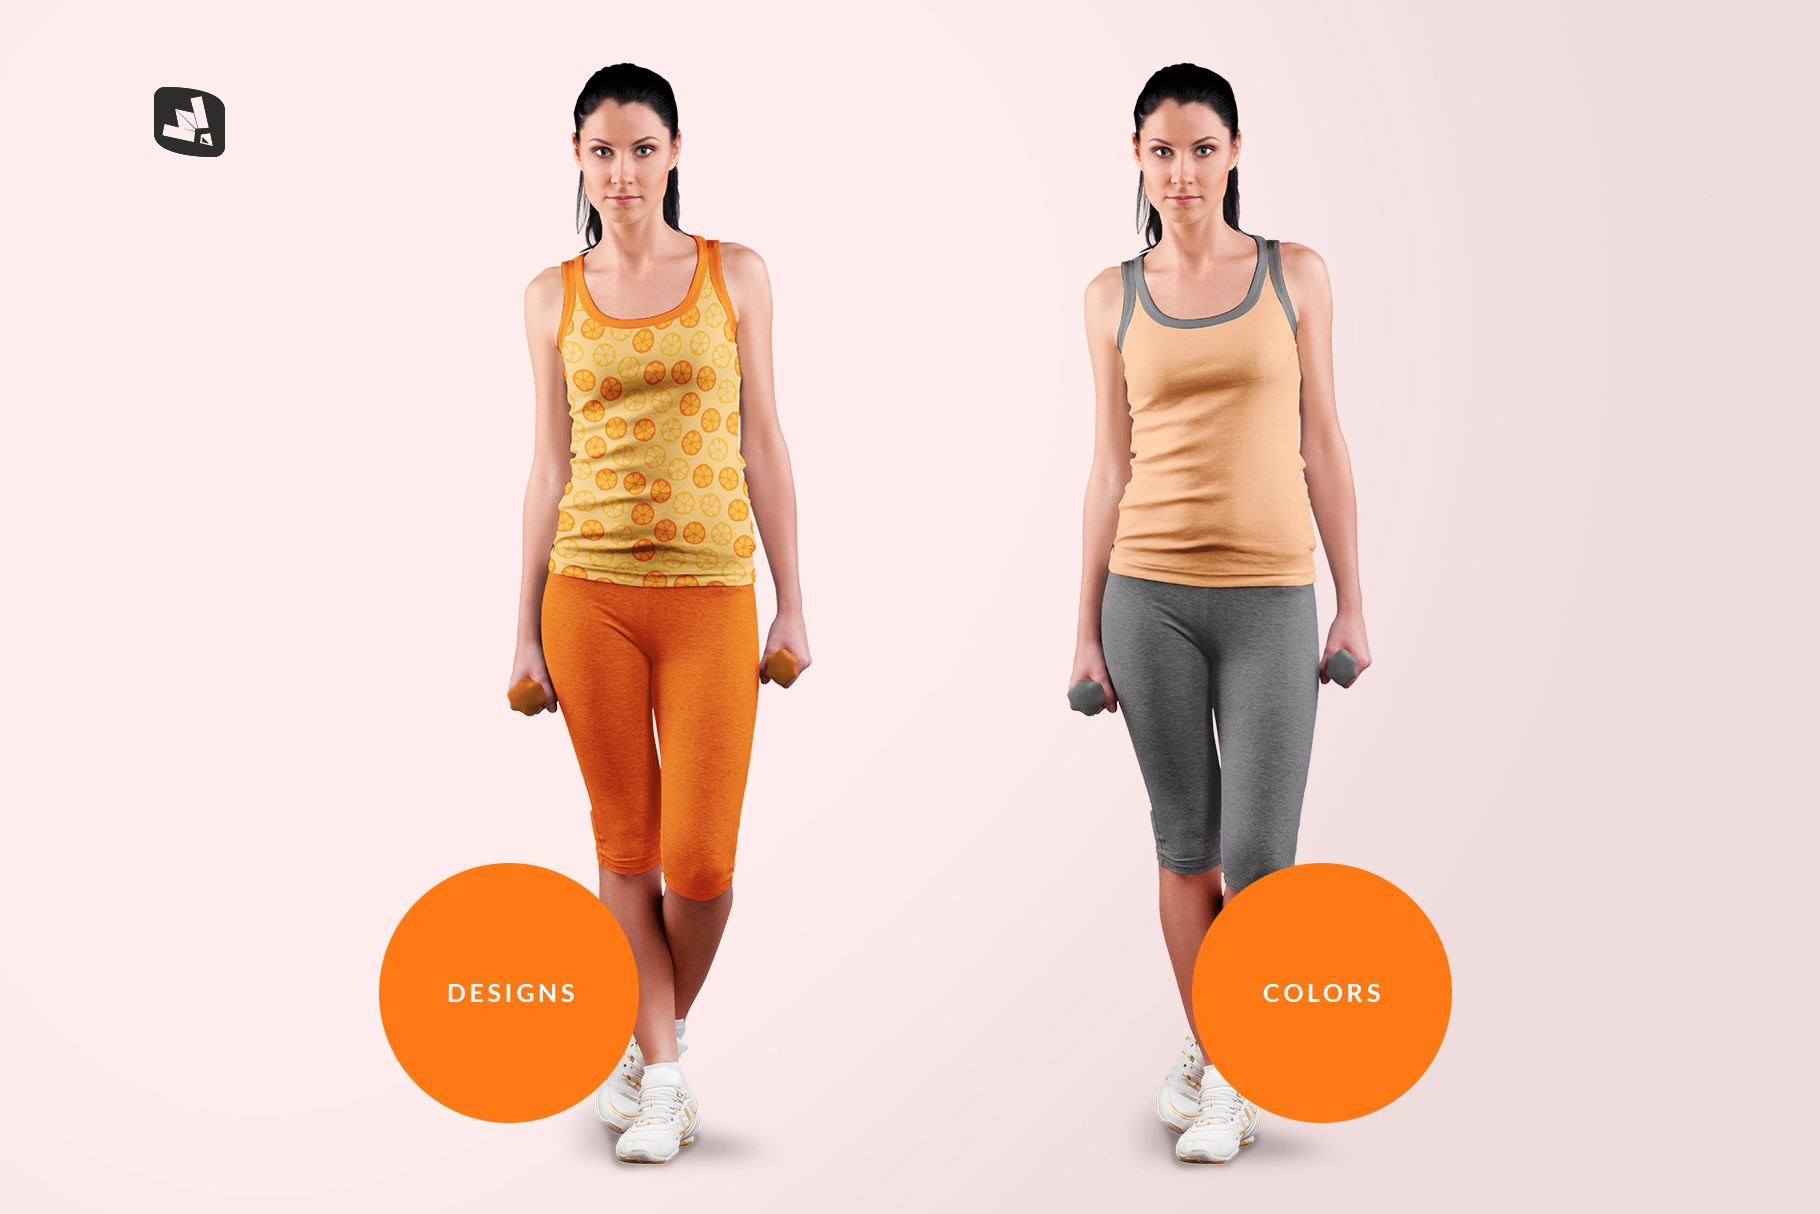 types of the female sleeveless gym outfit mockup